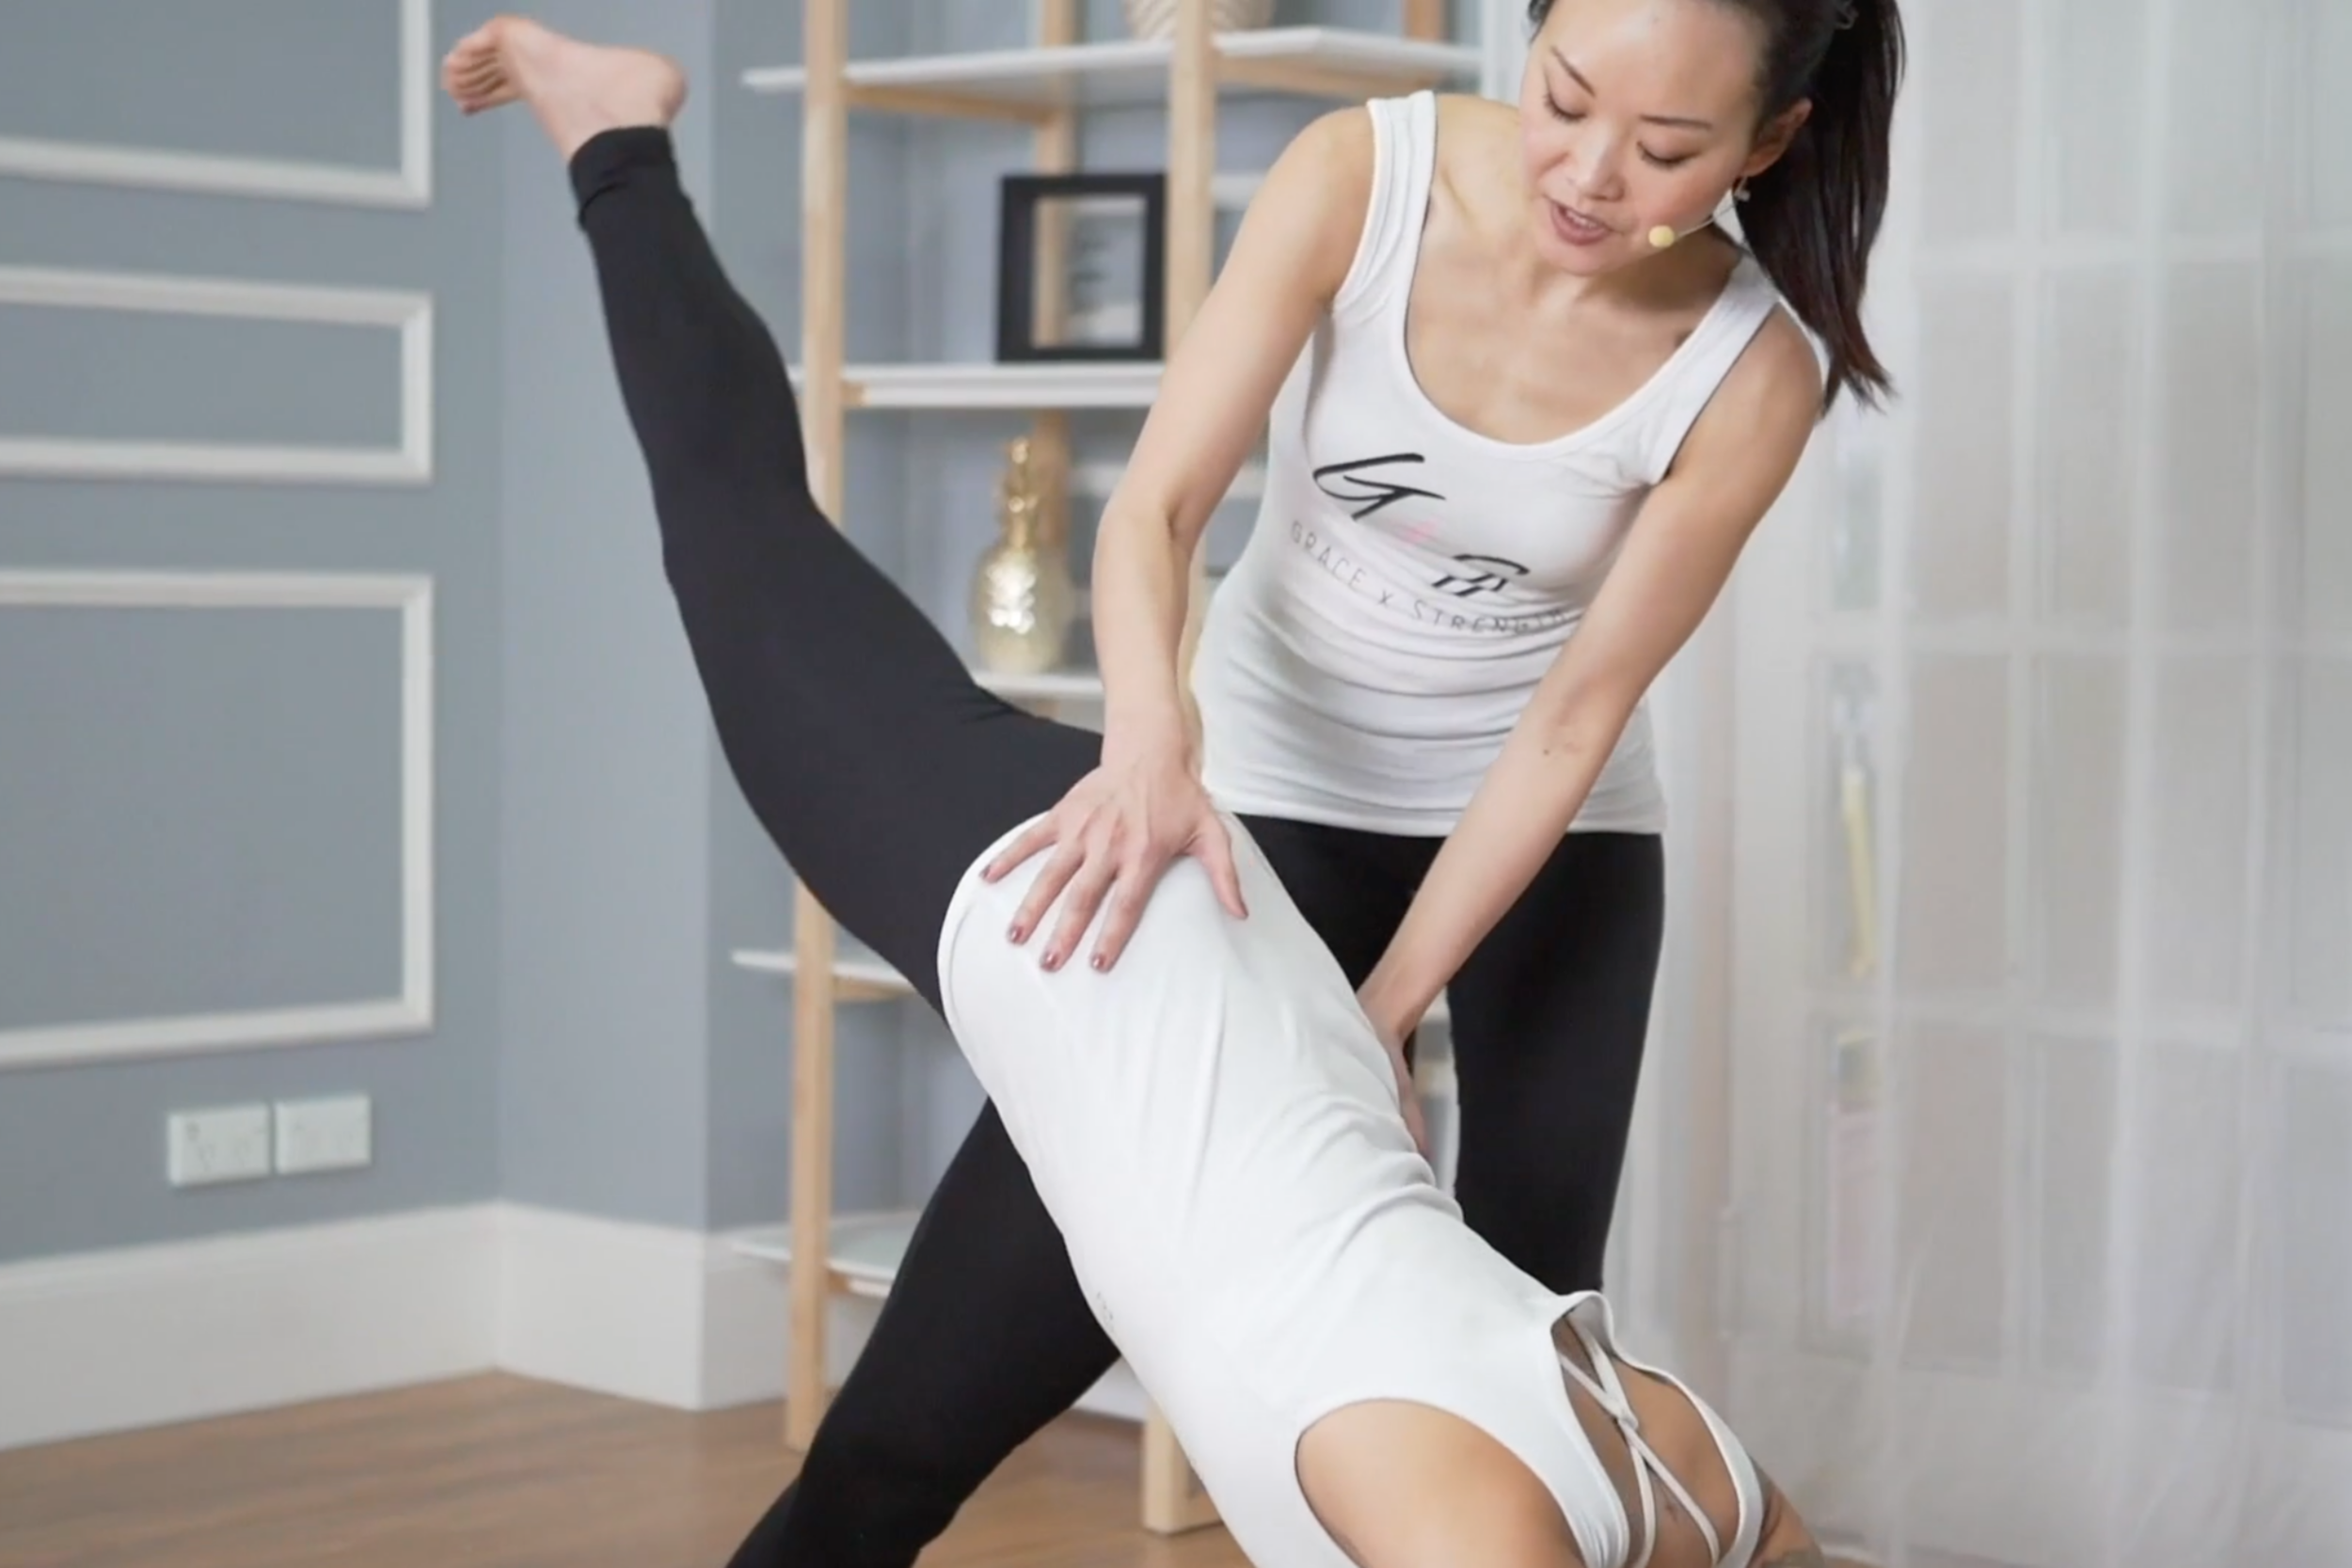 YOGA THERAPY - Yoga therapy uses a variety of yoga practices aimed to improve a health condition. I am a trained yoga therapist with a passion to help women with anxiety, depression, eating disorders, migraines and athletes. Find out more by clicking on this link.